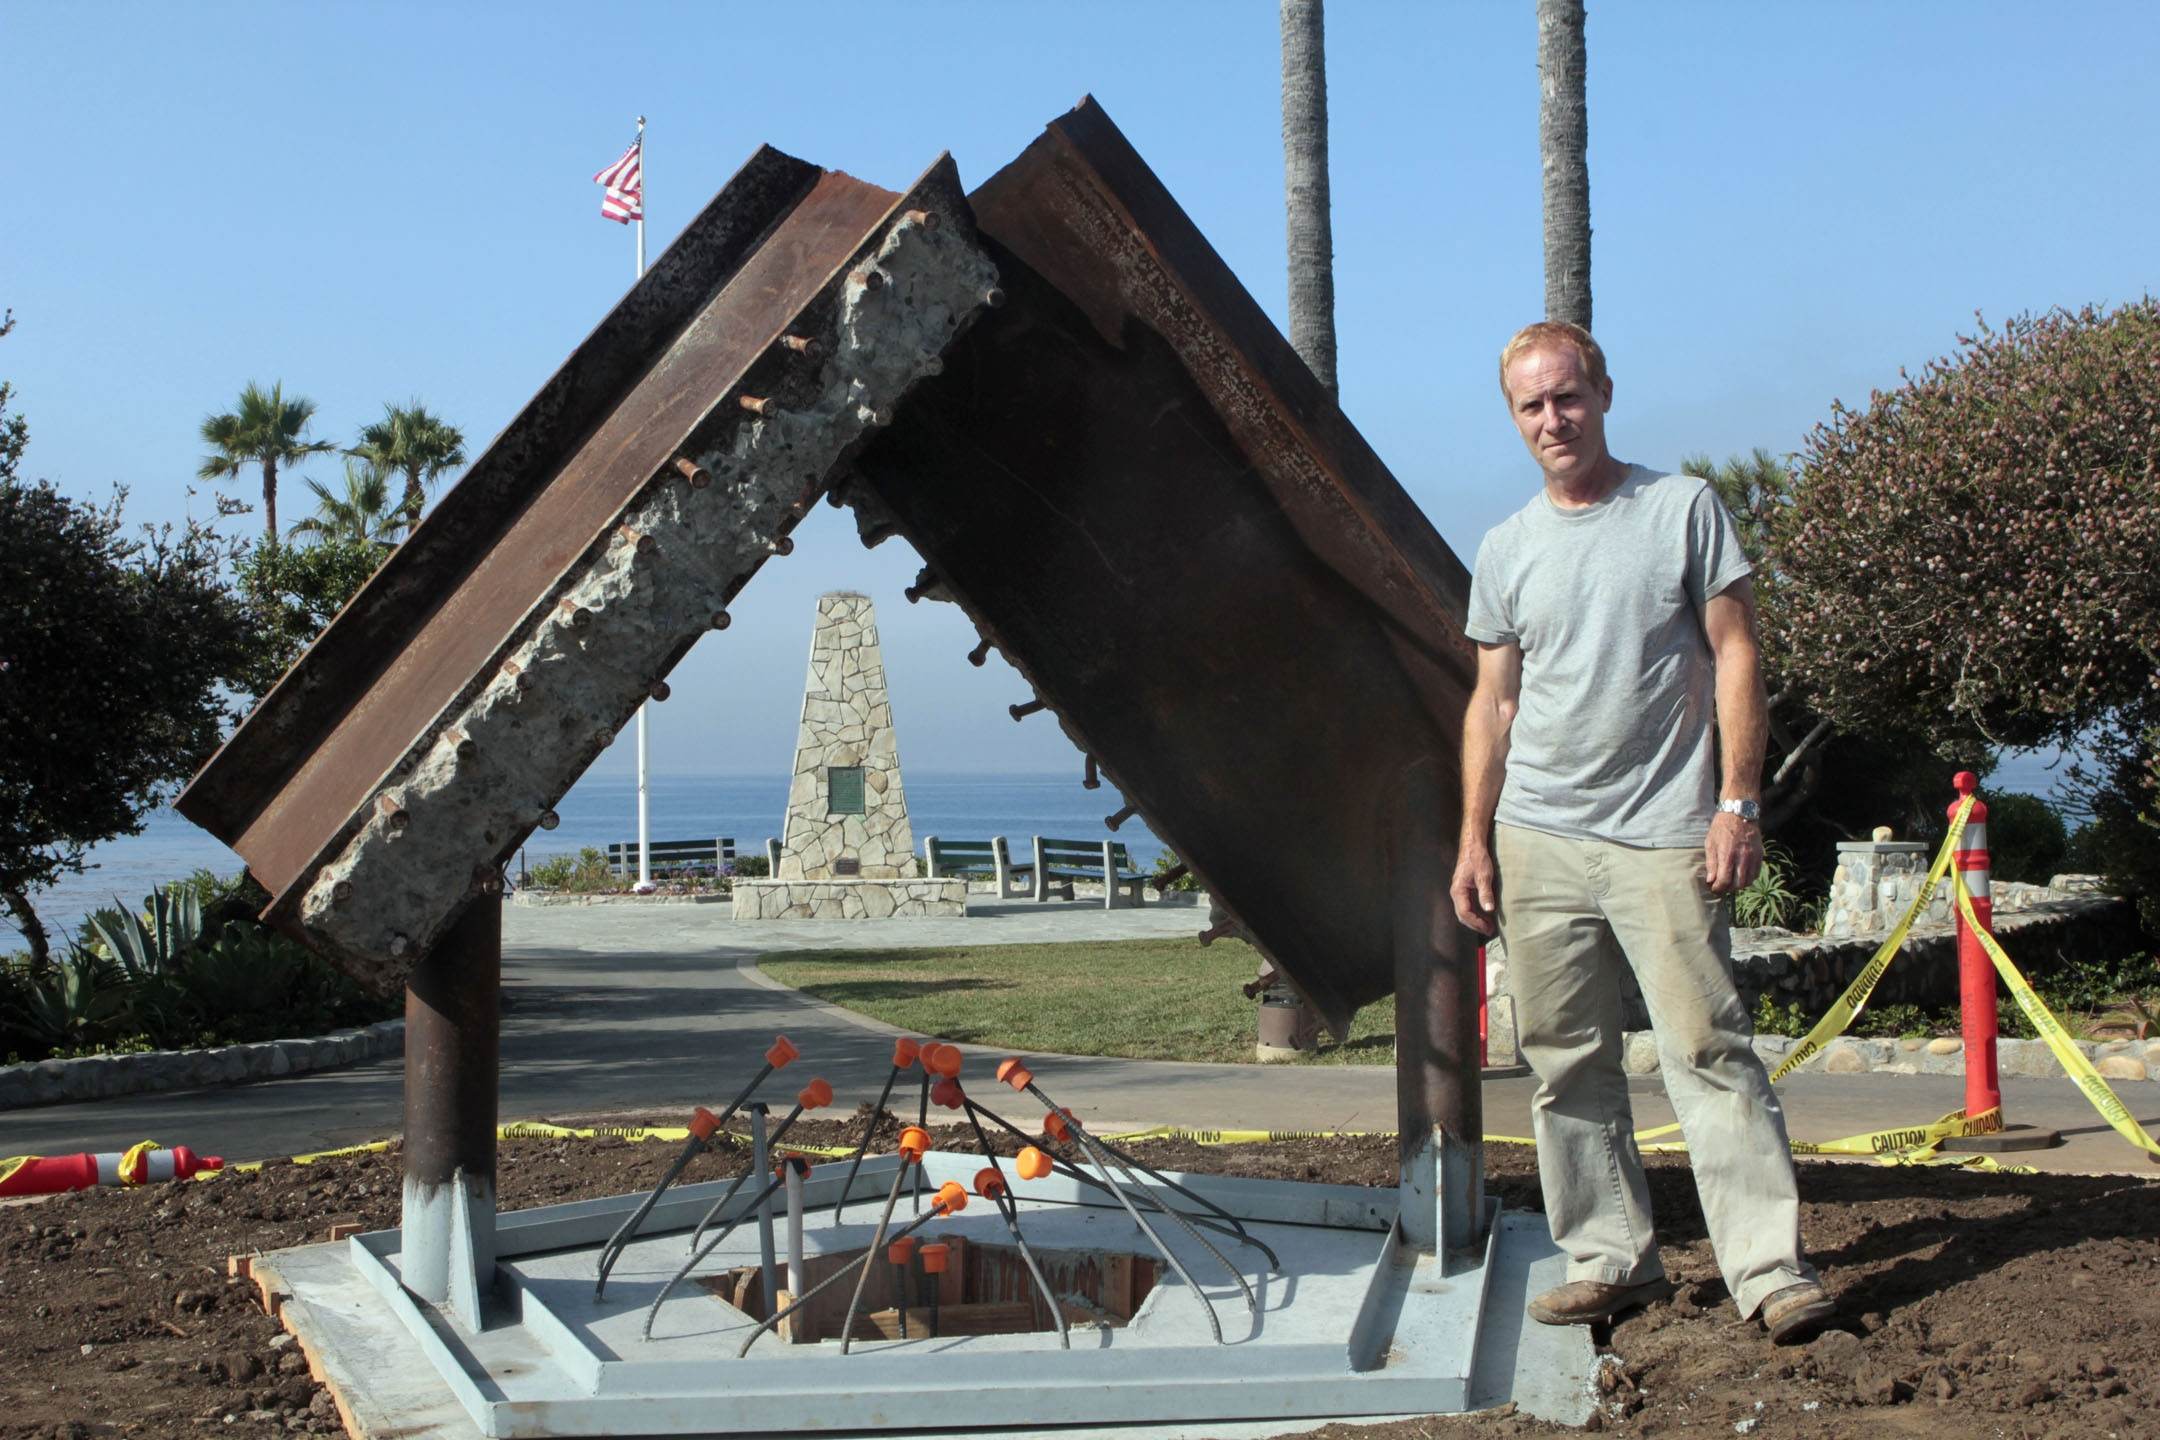 Jorg Dubin at Heisler Park's Monument Point with his Sept. 11 memorial in progress. Photo by Ted Reckas.